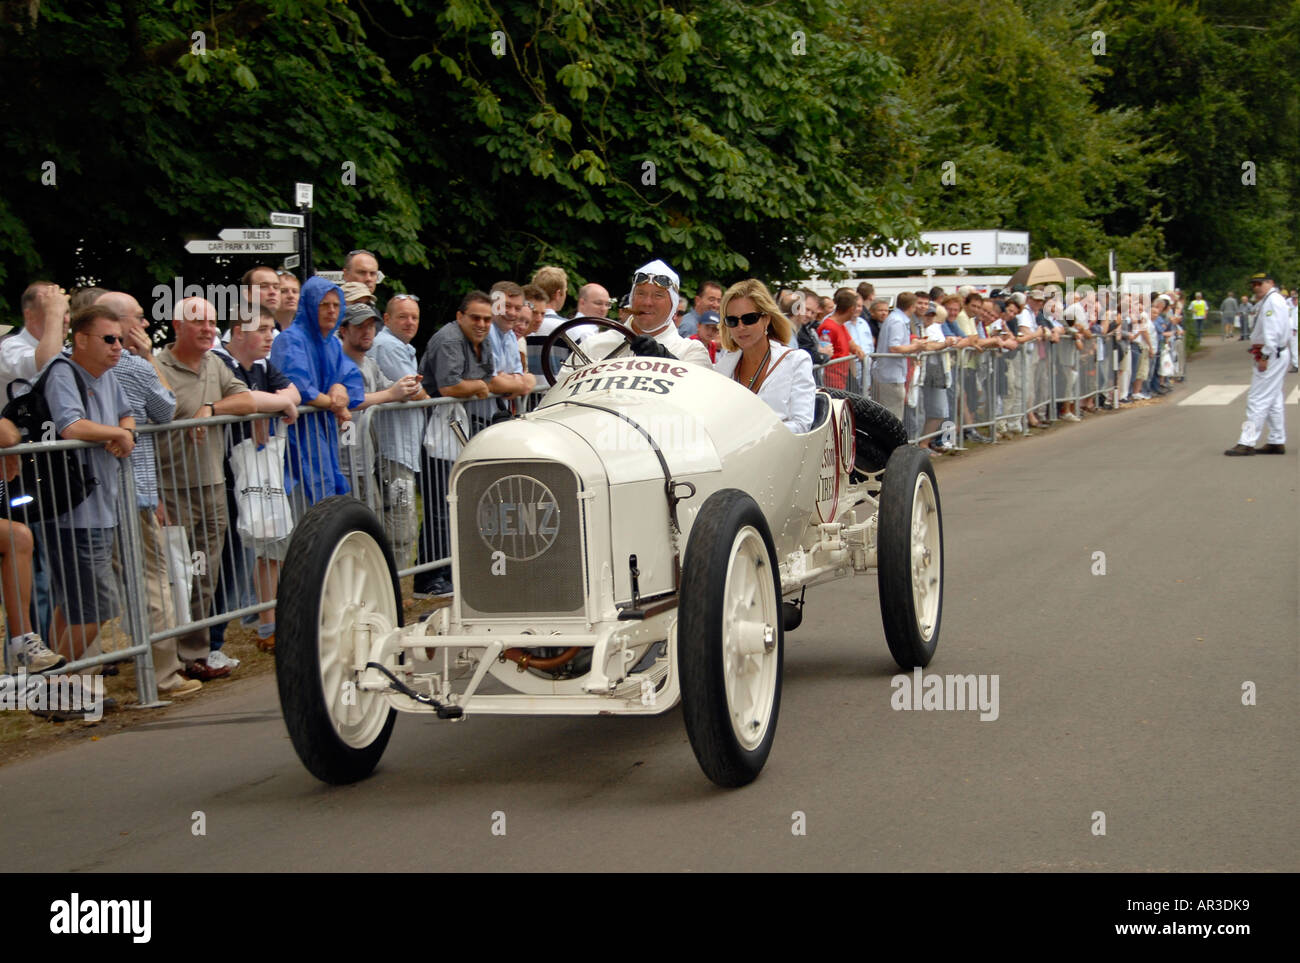 Racing Mercedes car at Goodwood track revival day watched by spectators - Stock Image